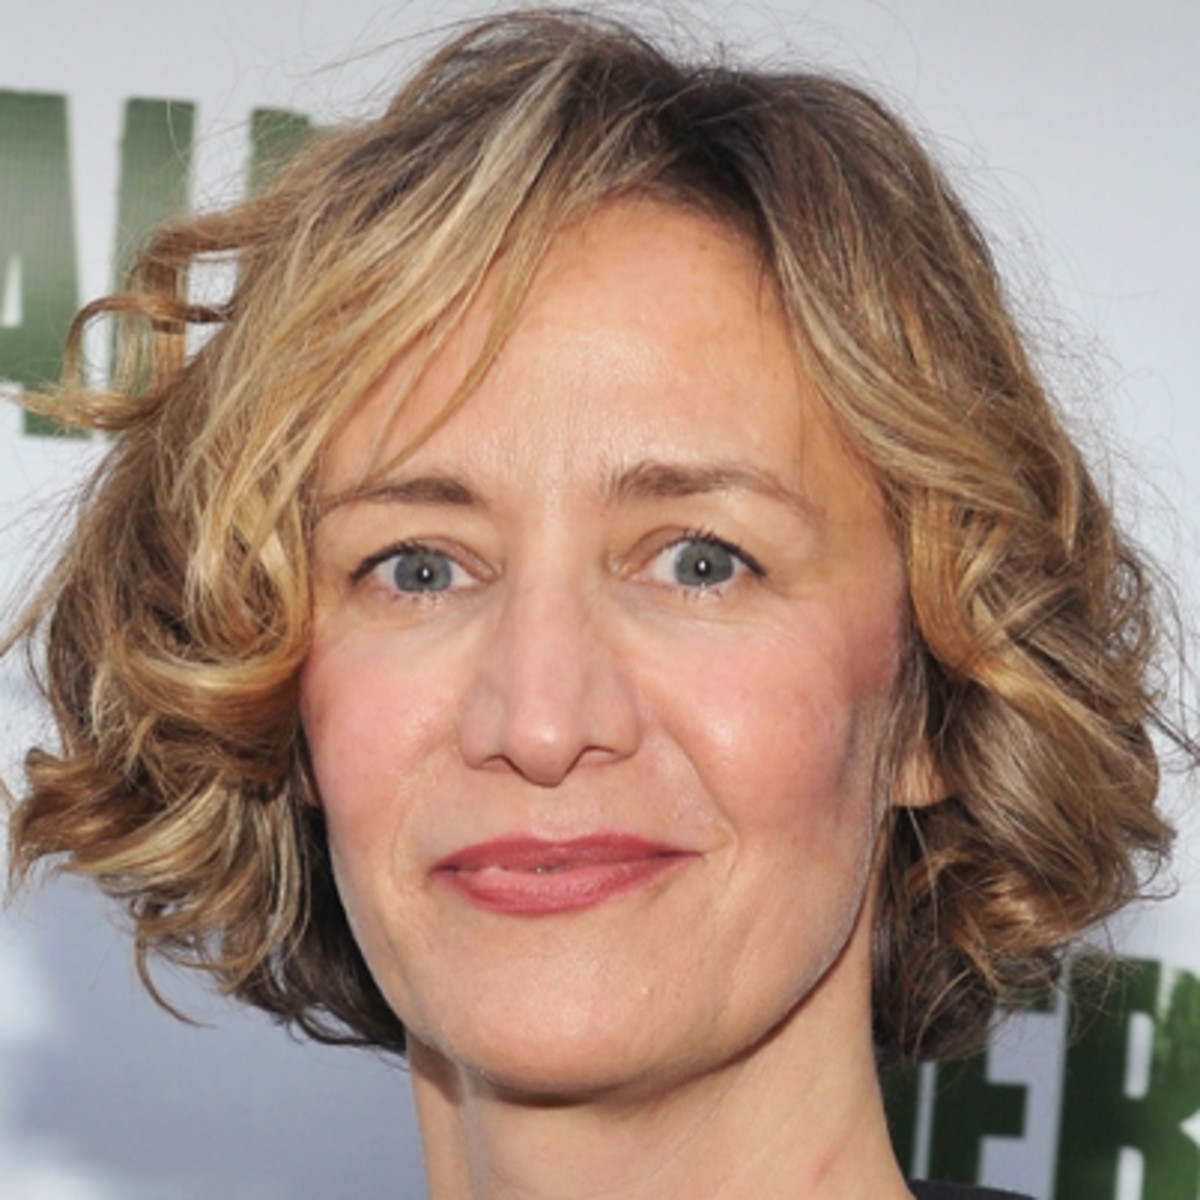 braless Janet McTeer (born 1961) naked photo 2017